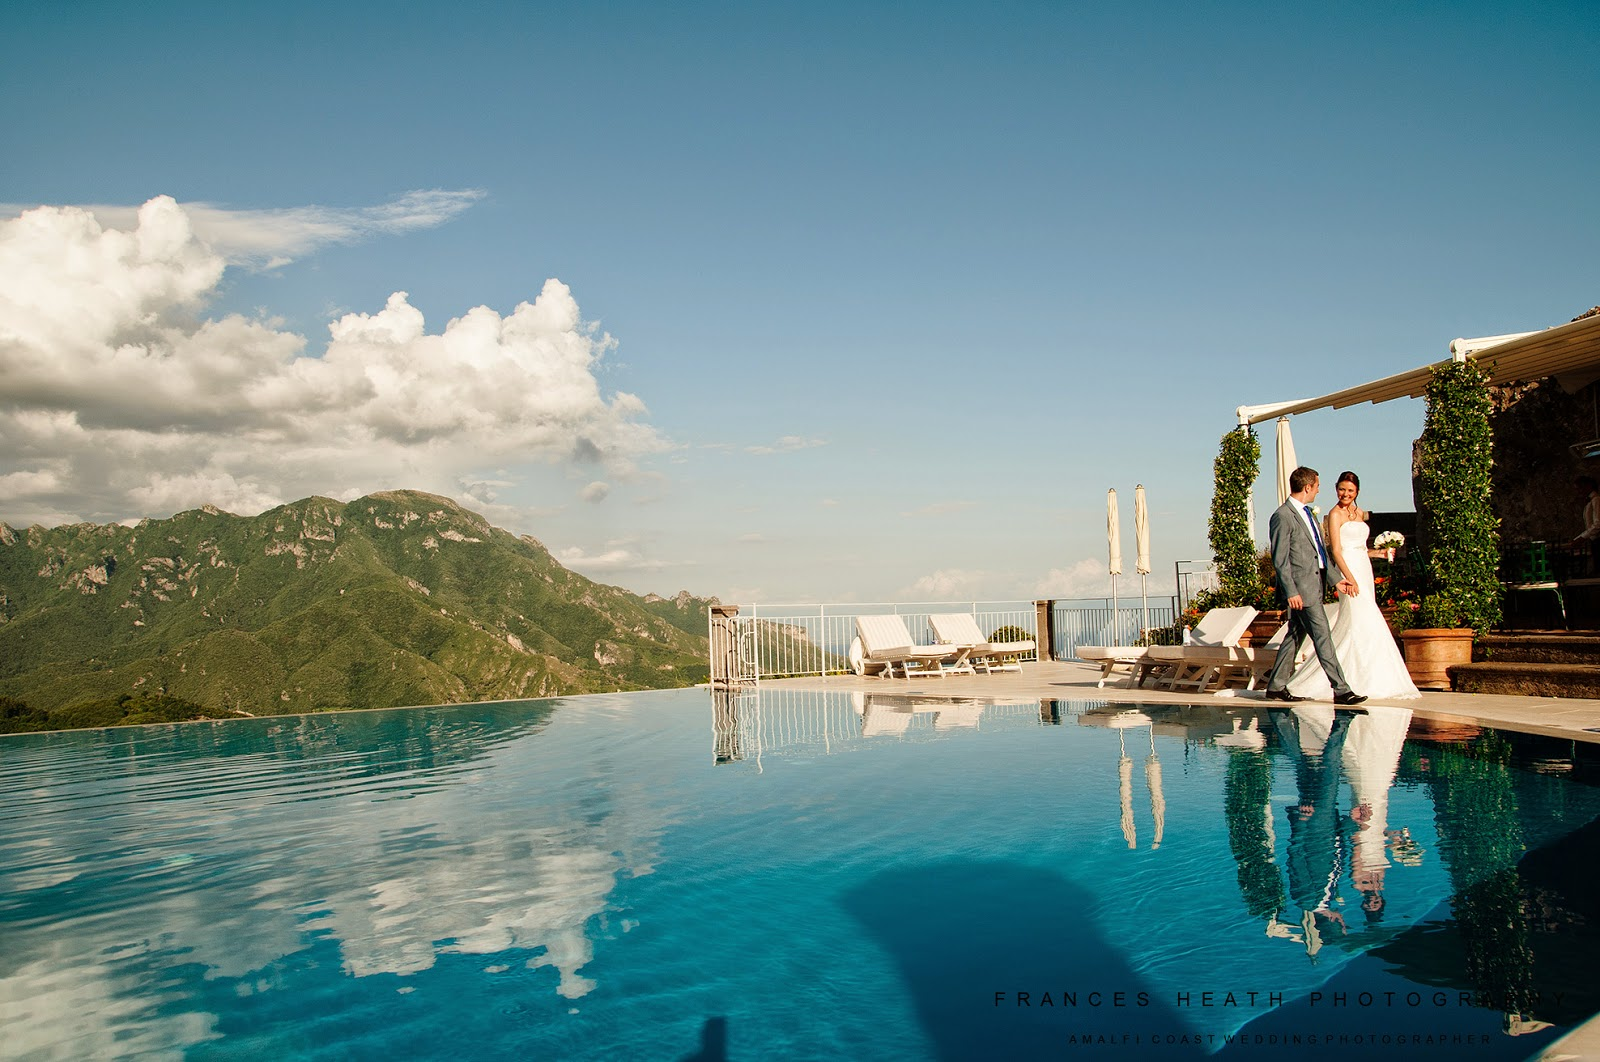 Bride and groom at the Infinity pool in Hotel Caruso